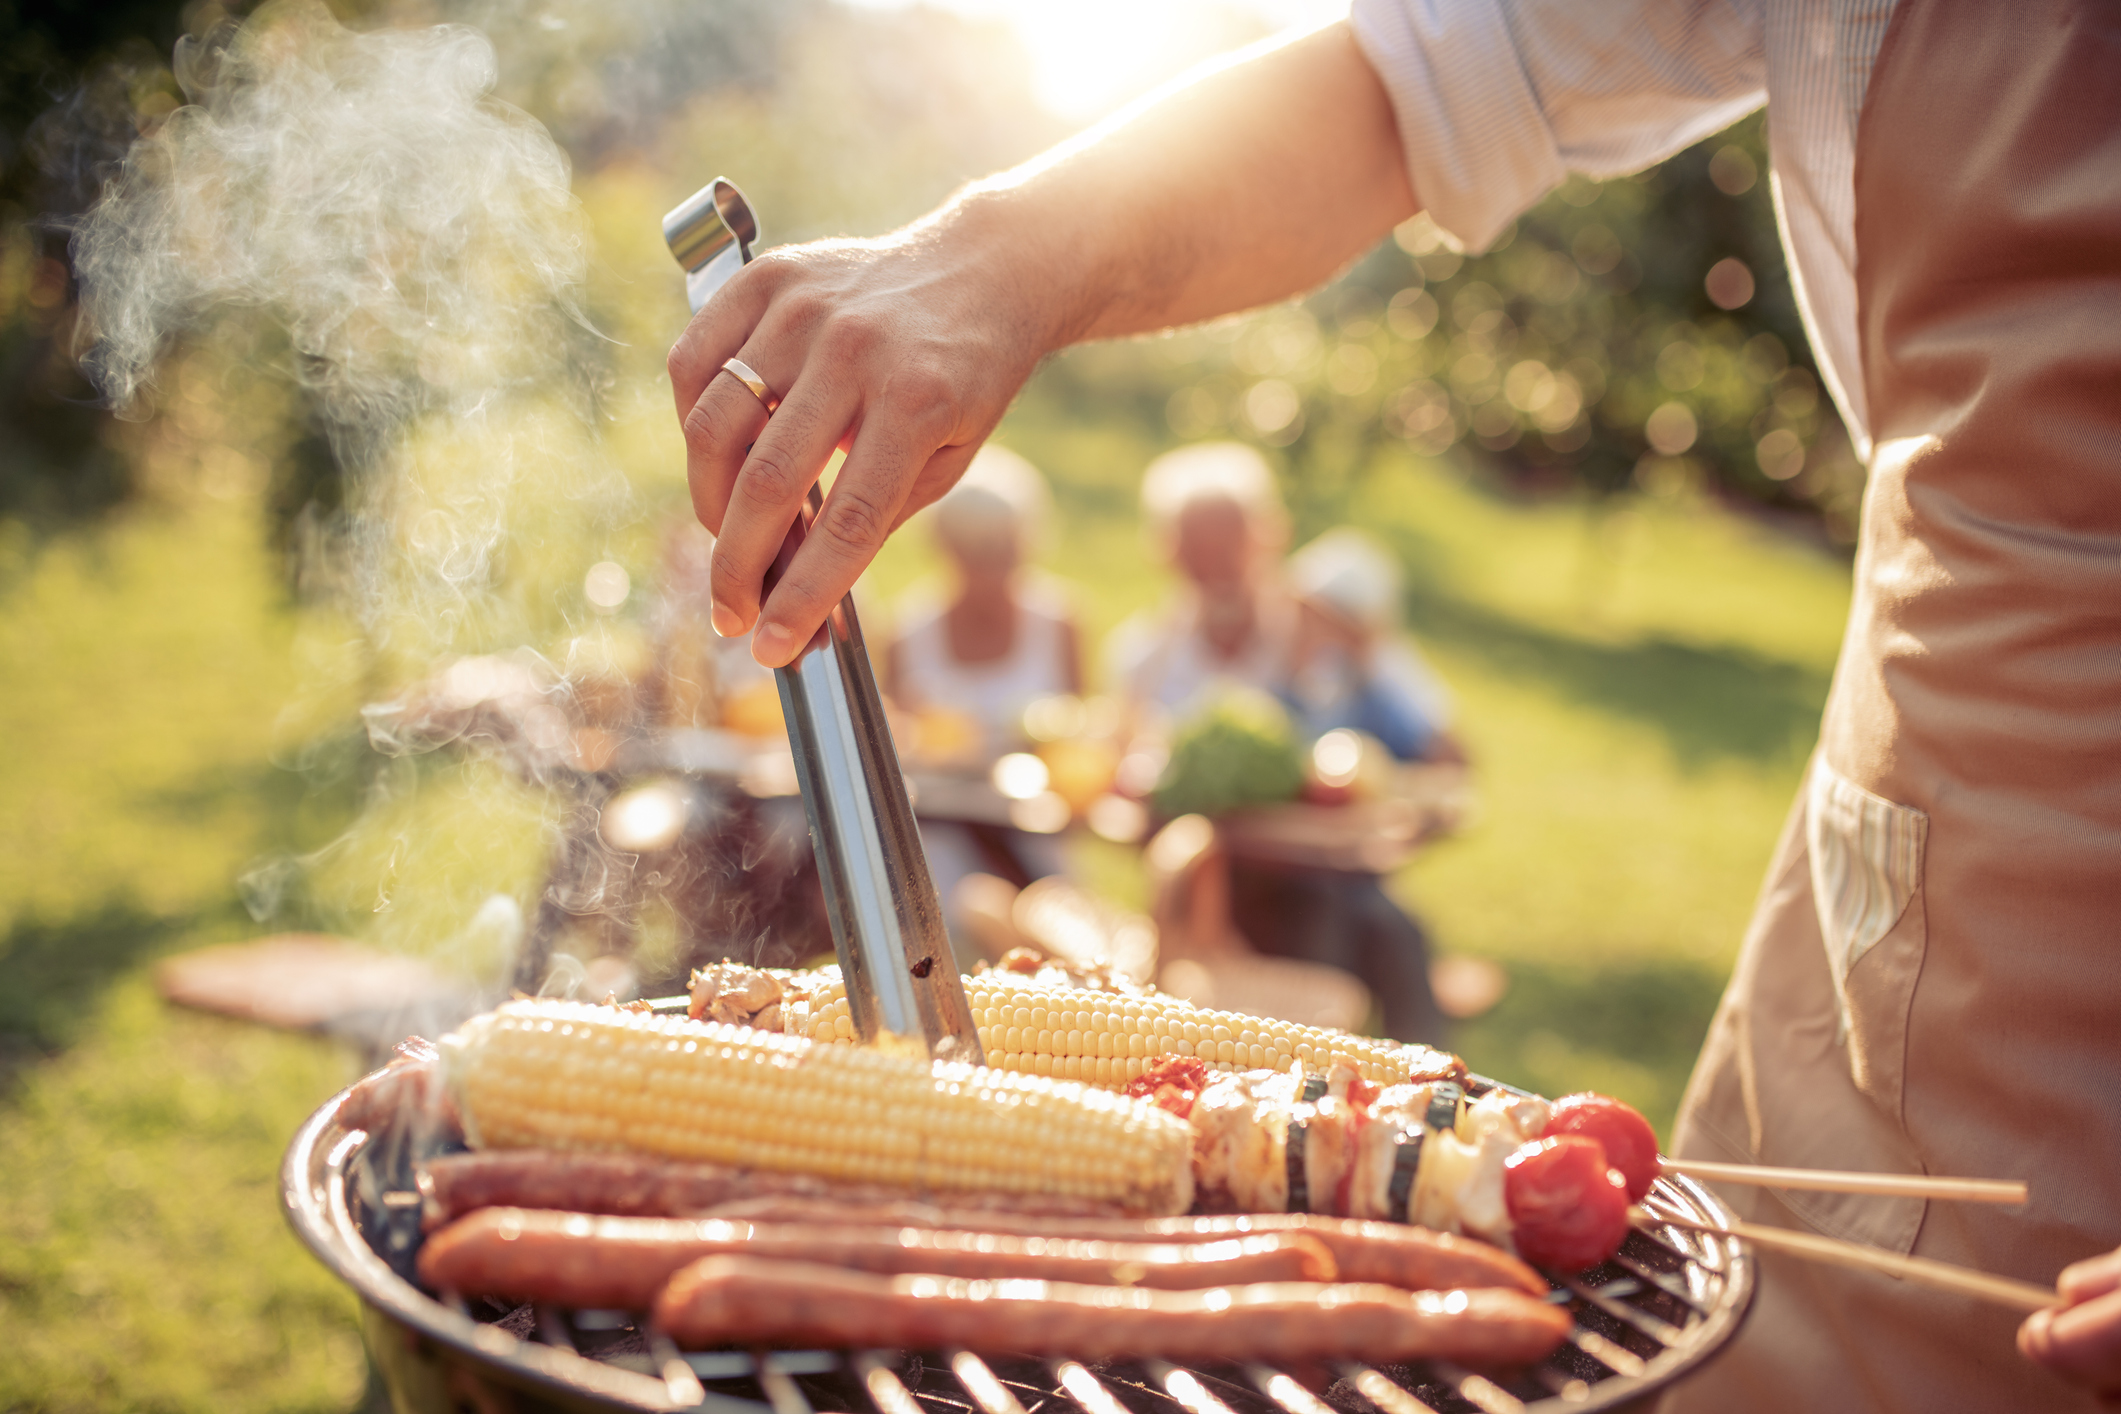 3138594a0 Grilling with Dad: 7 Tips to Make Father's Day Special - Diane ...